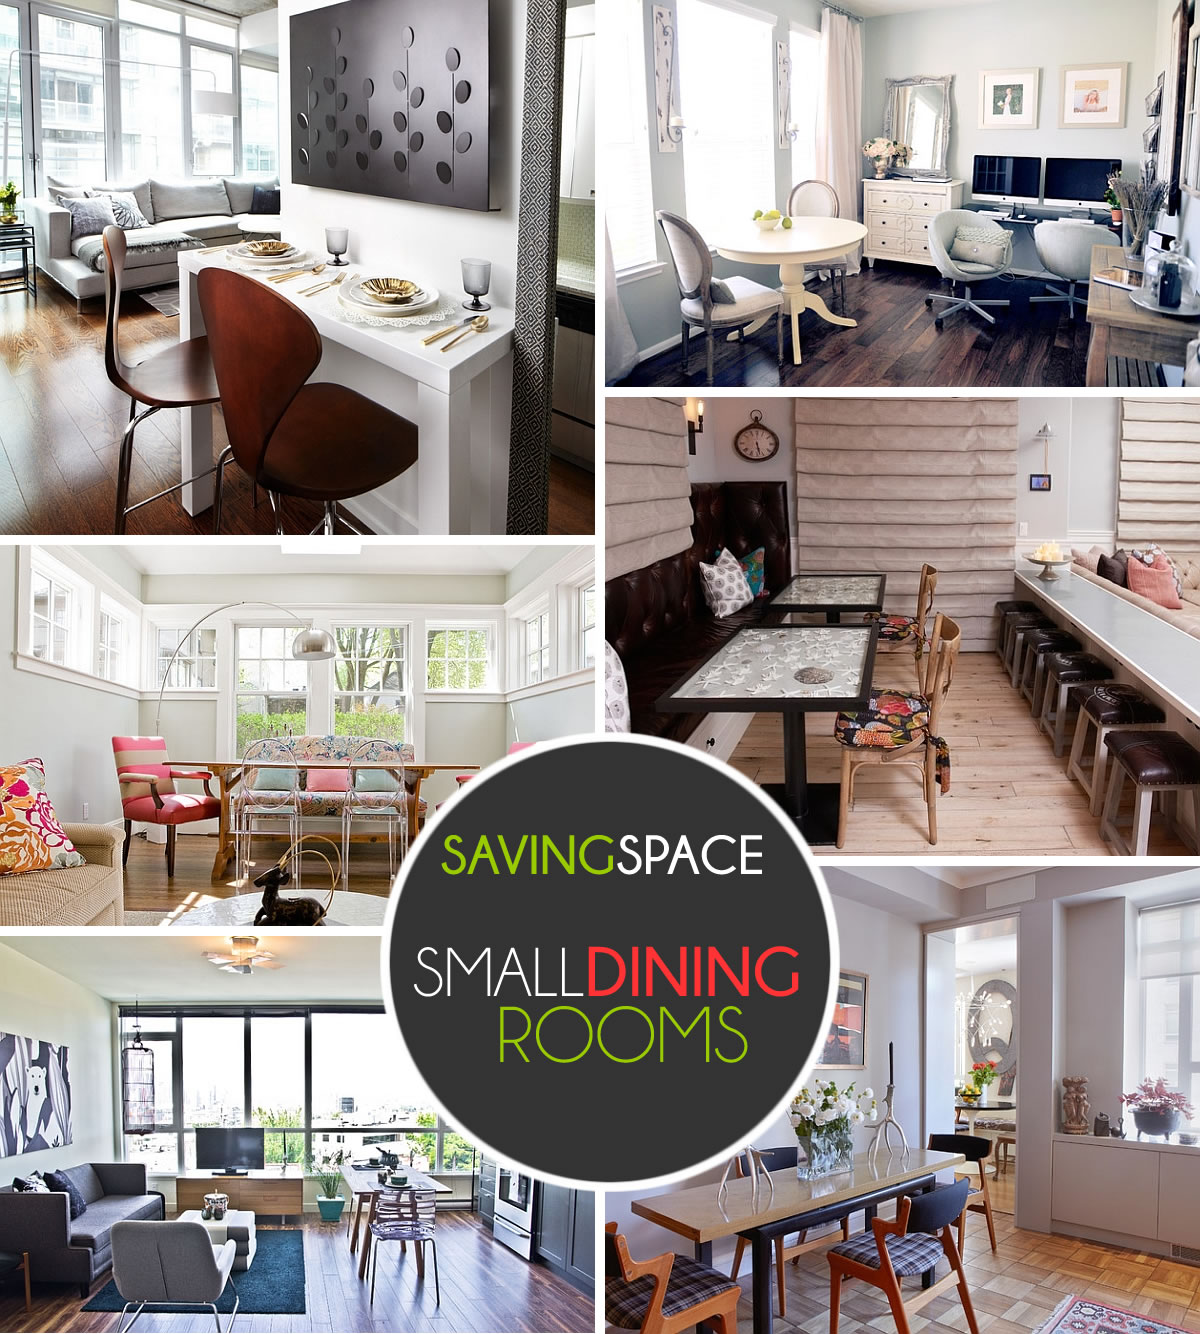 Small Dining Rooms That Save Up On Space